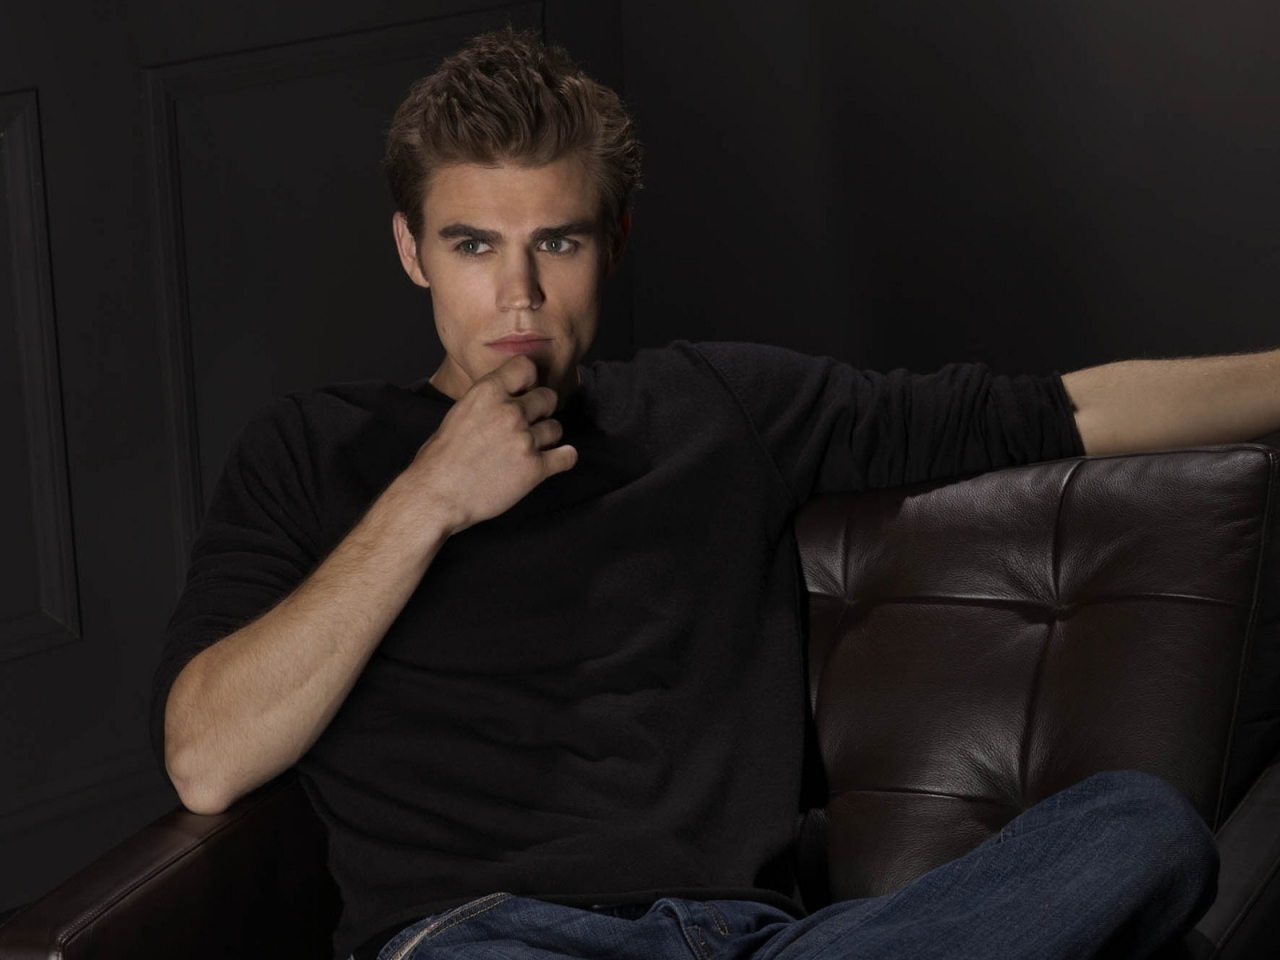 Paul Wesley for 1280 x 960 resolution